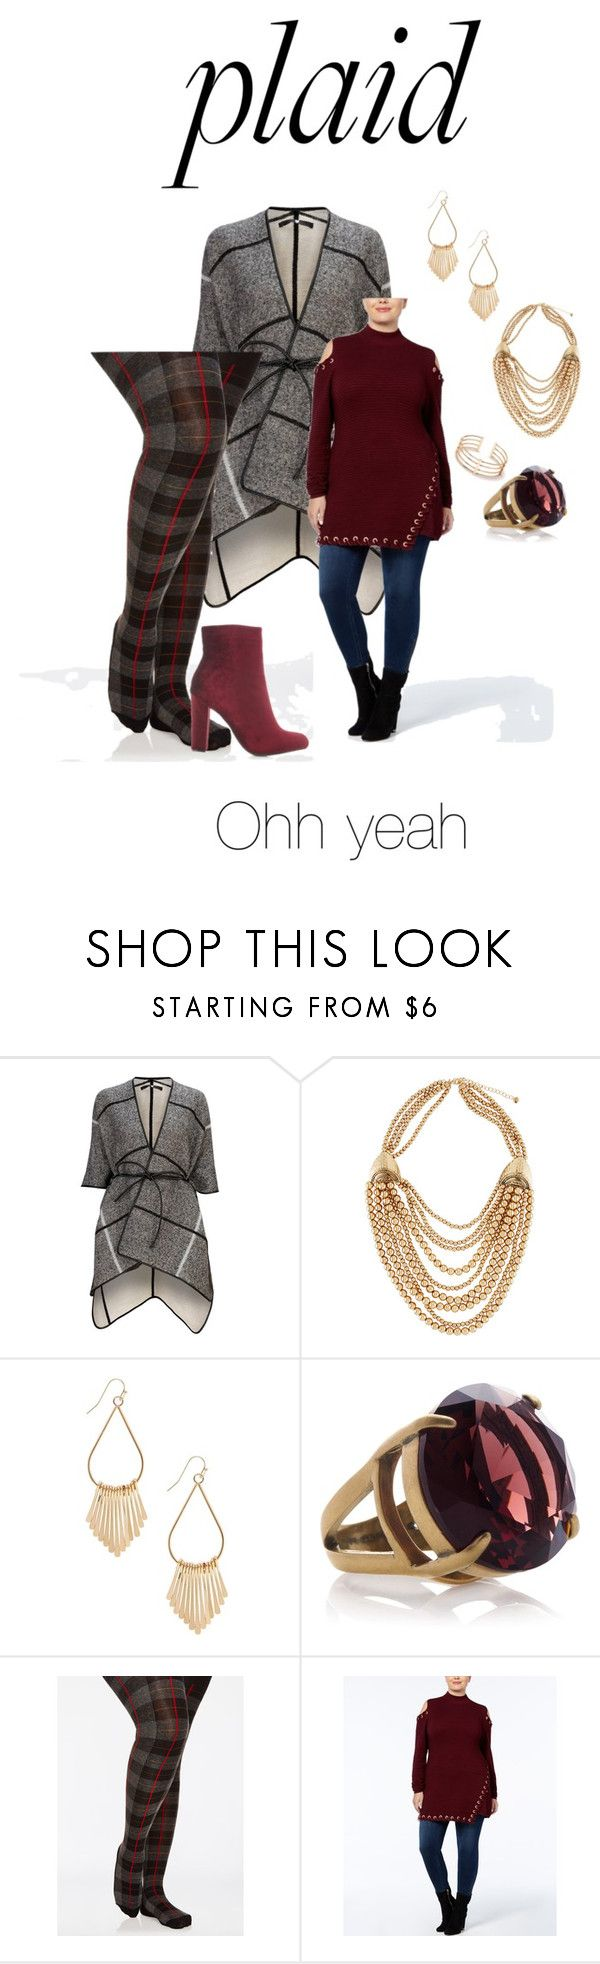 """""""Untitled #1546"""" by george-isaacs ❤ liked on Polyvore featuring Lydell NYC, Marc Jacobs, Ashley Stewart, Belldini and Charlotte Russe"""